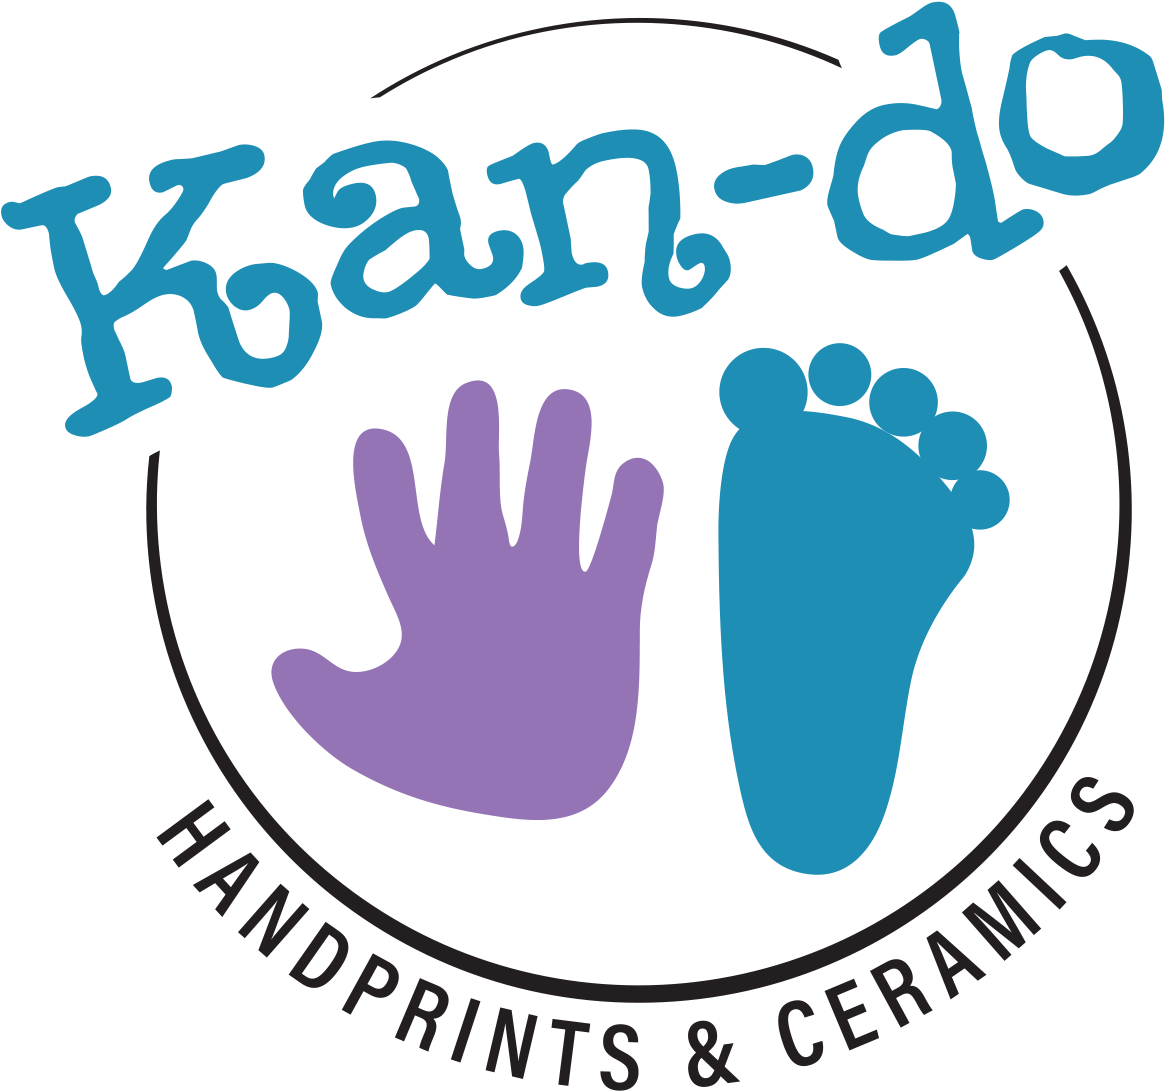 Kan-do Handprints & Ceramics